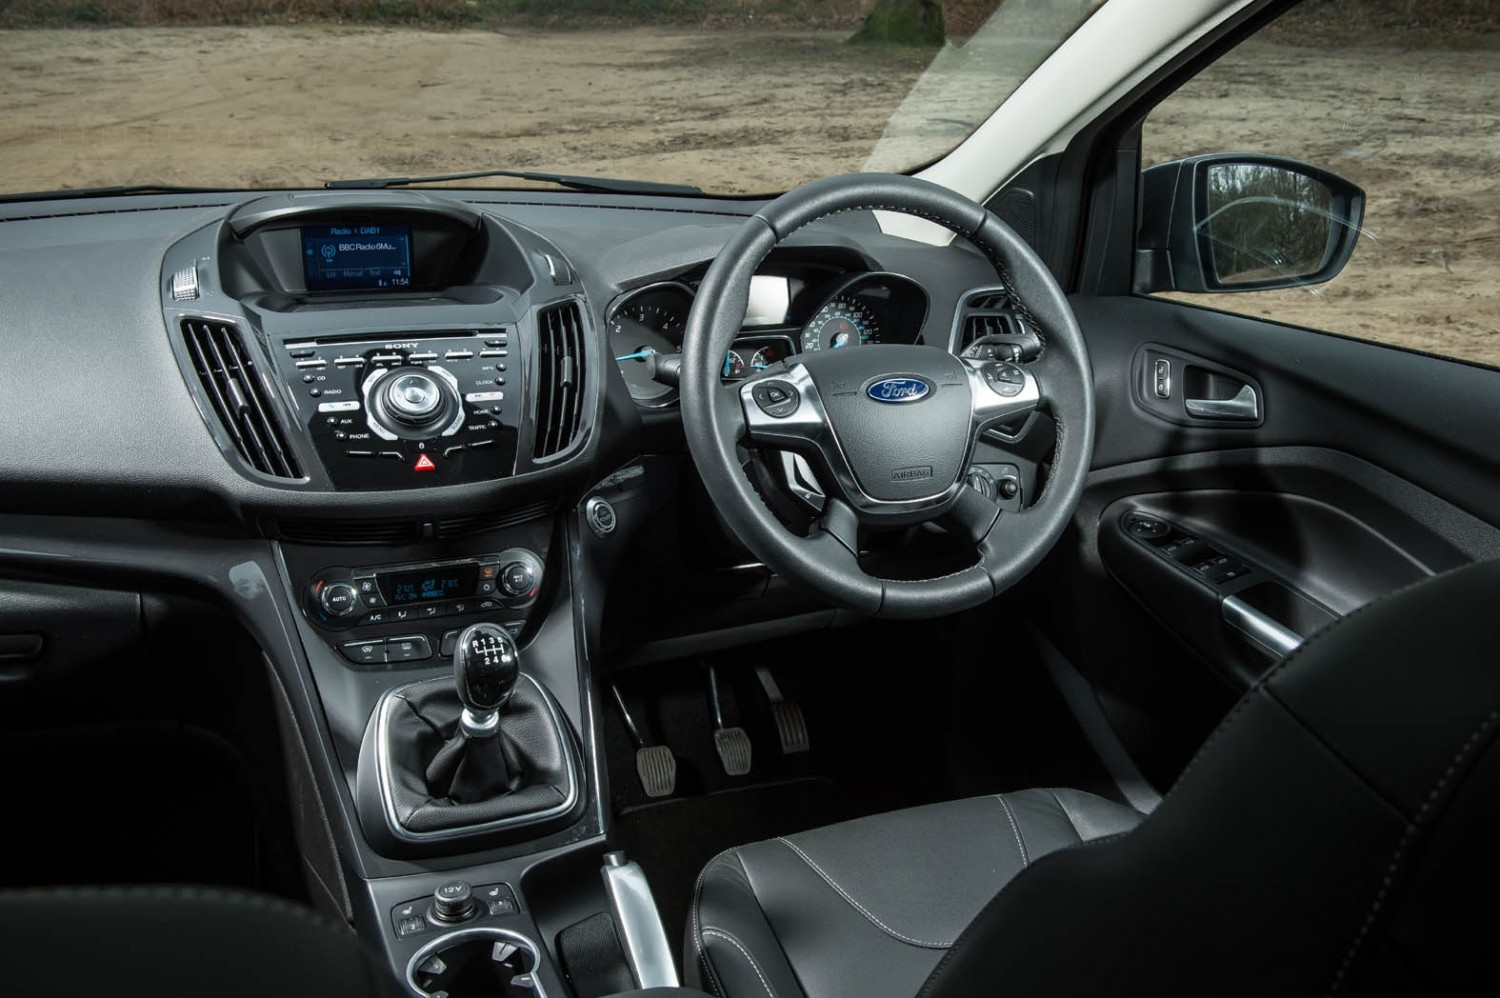 Ford Kuga 2017 Interieur New Ford Kuga Growls In Arctic Snow Eurekar